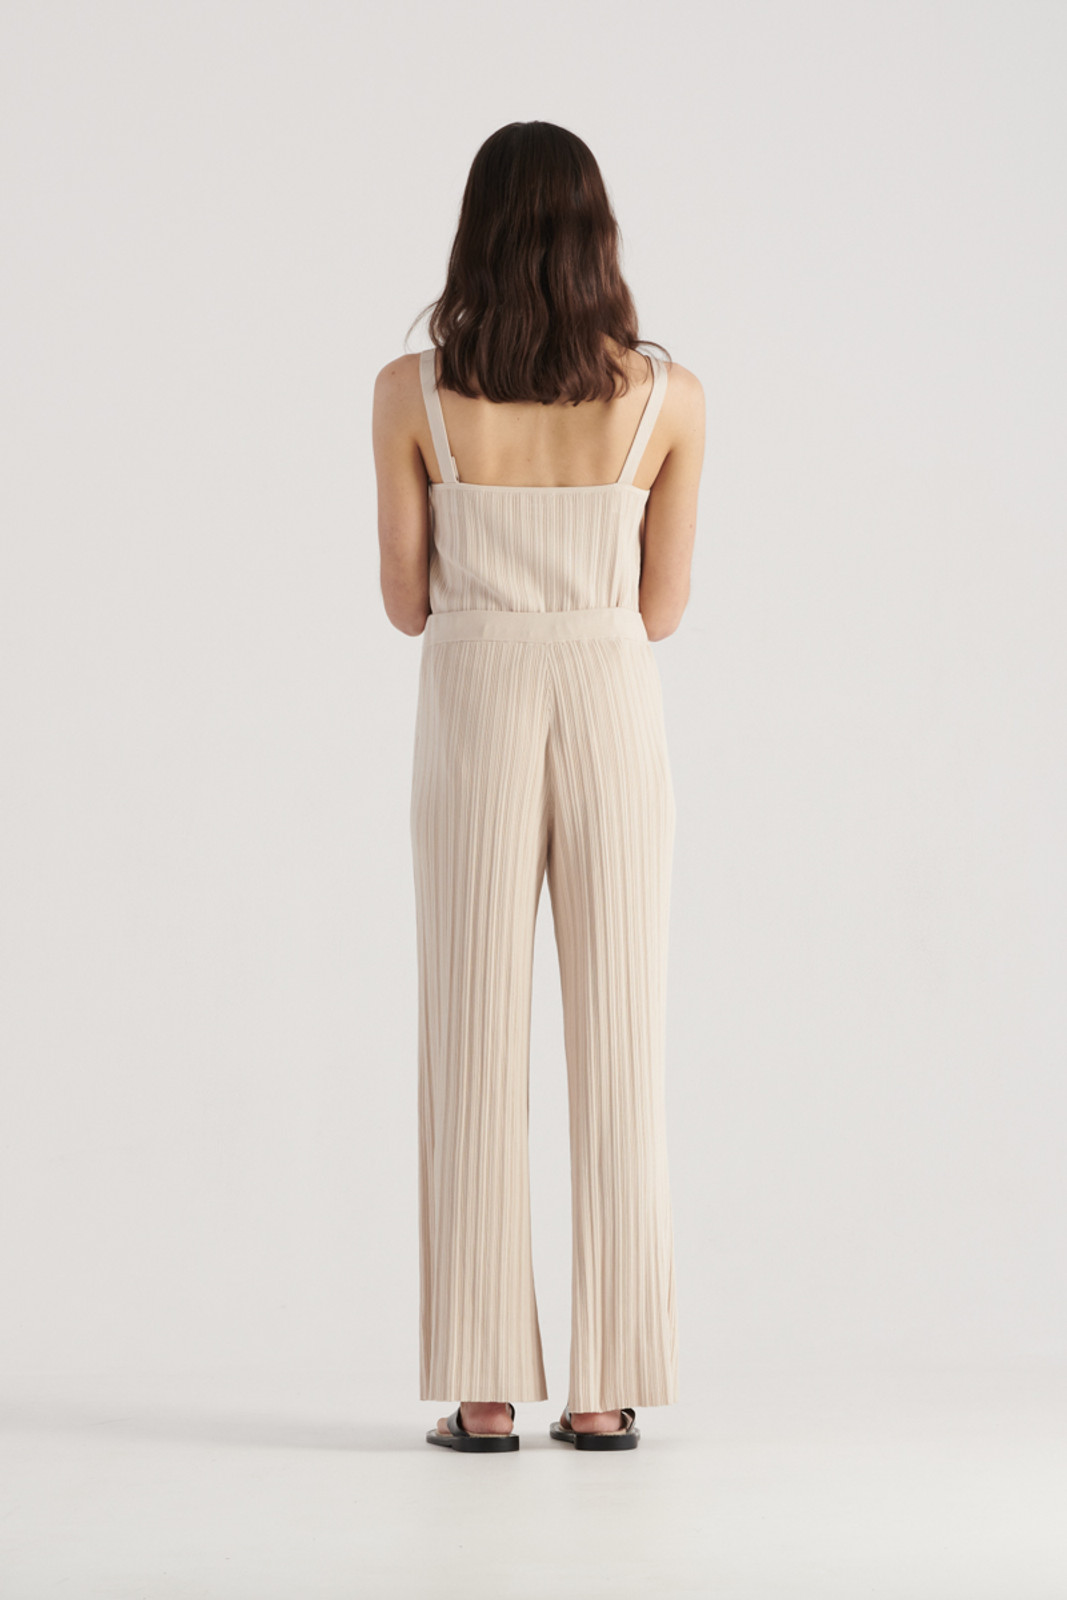 Elka Collective WomensPalma Knit Pant Biscuit  4